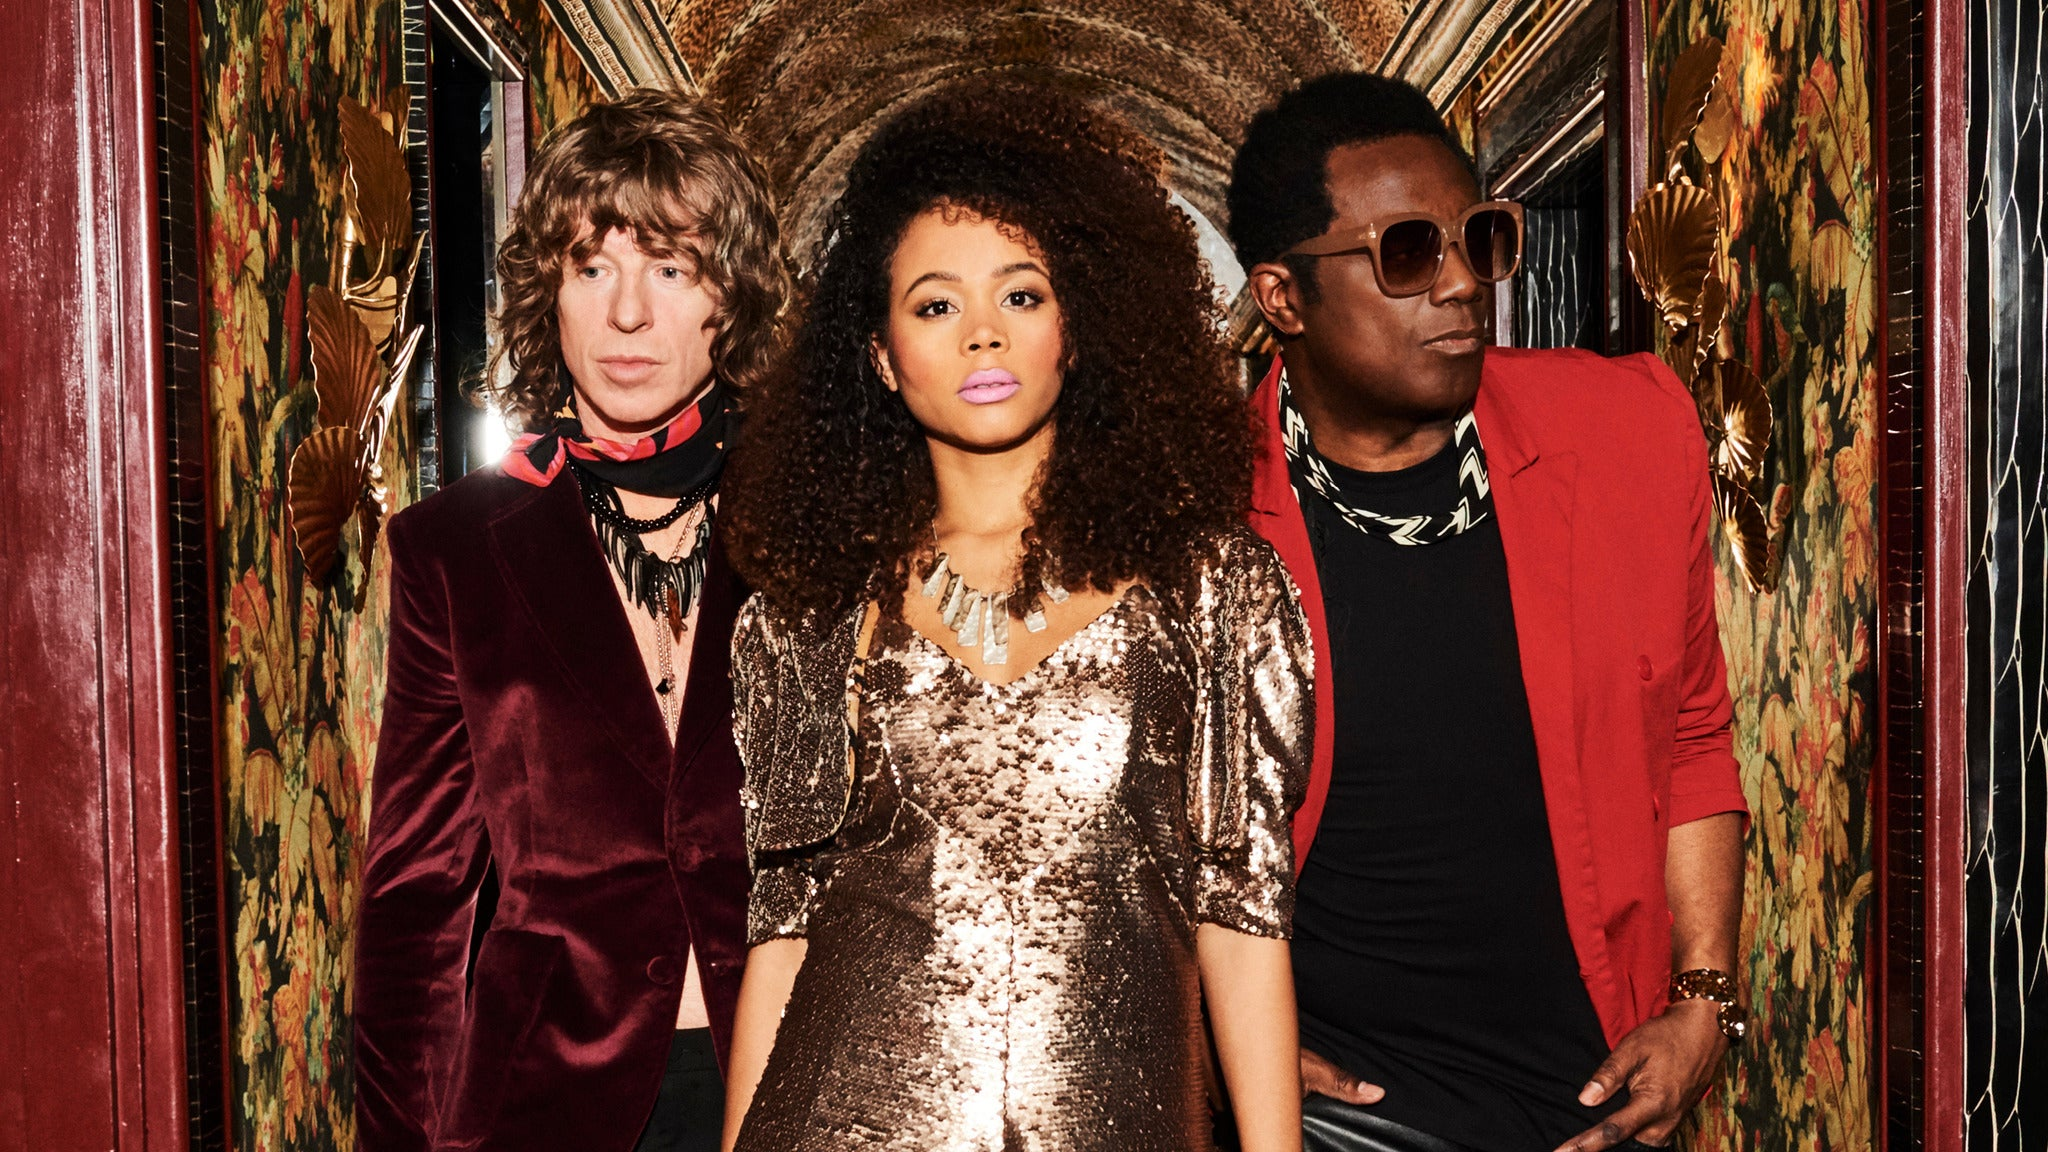 Image used with permission from Ticketmaster | The Brand New Heavies & Dig tickets